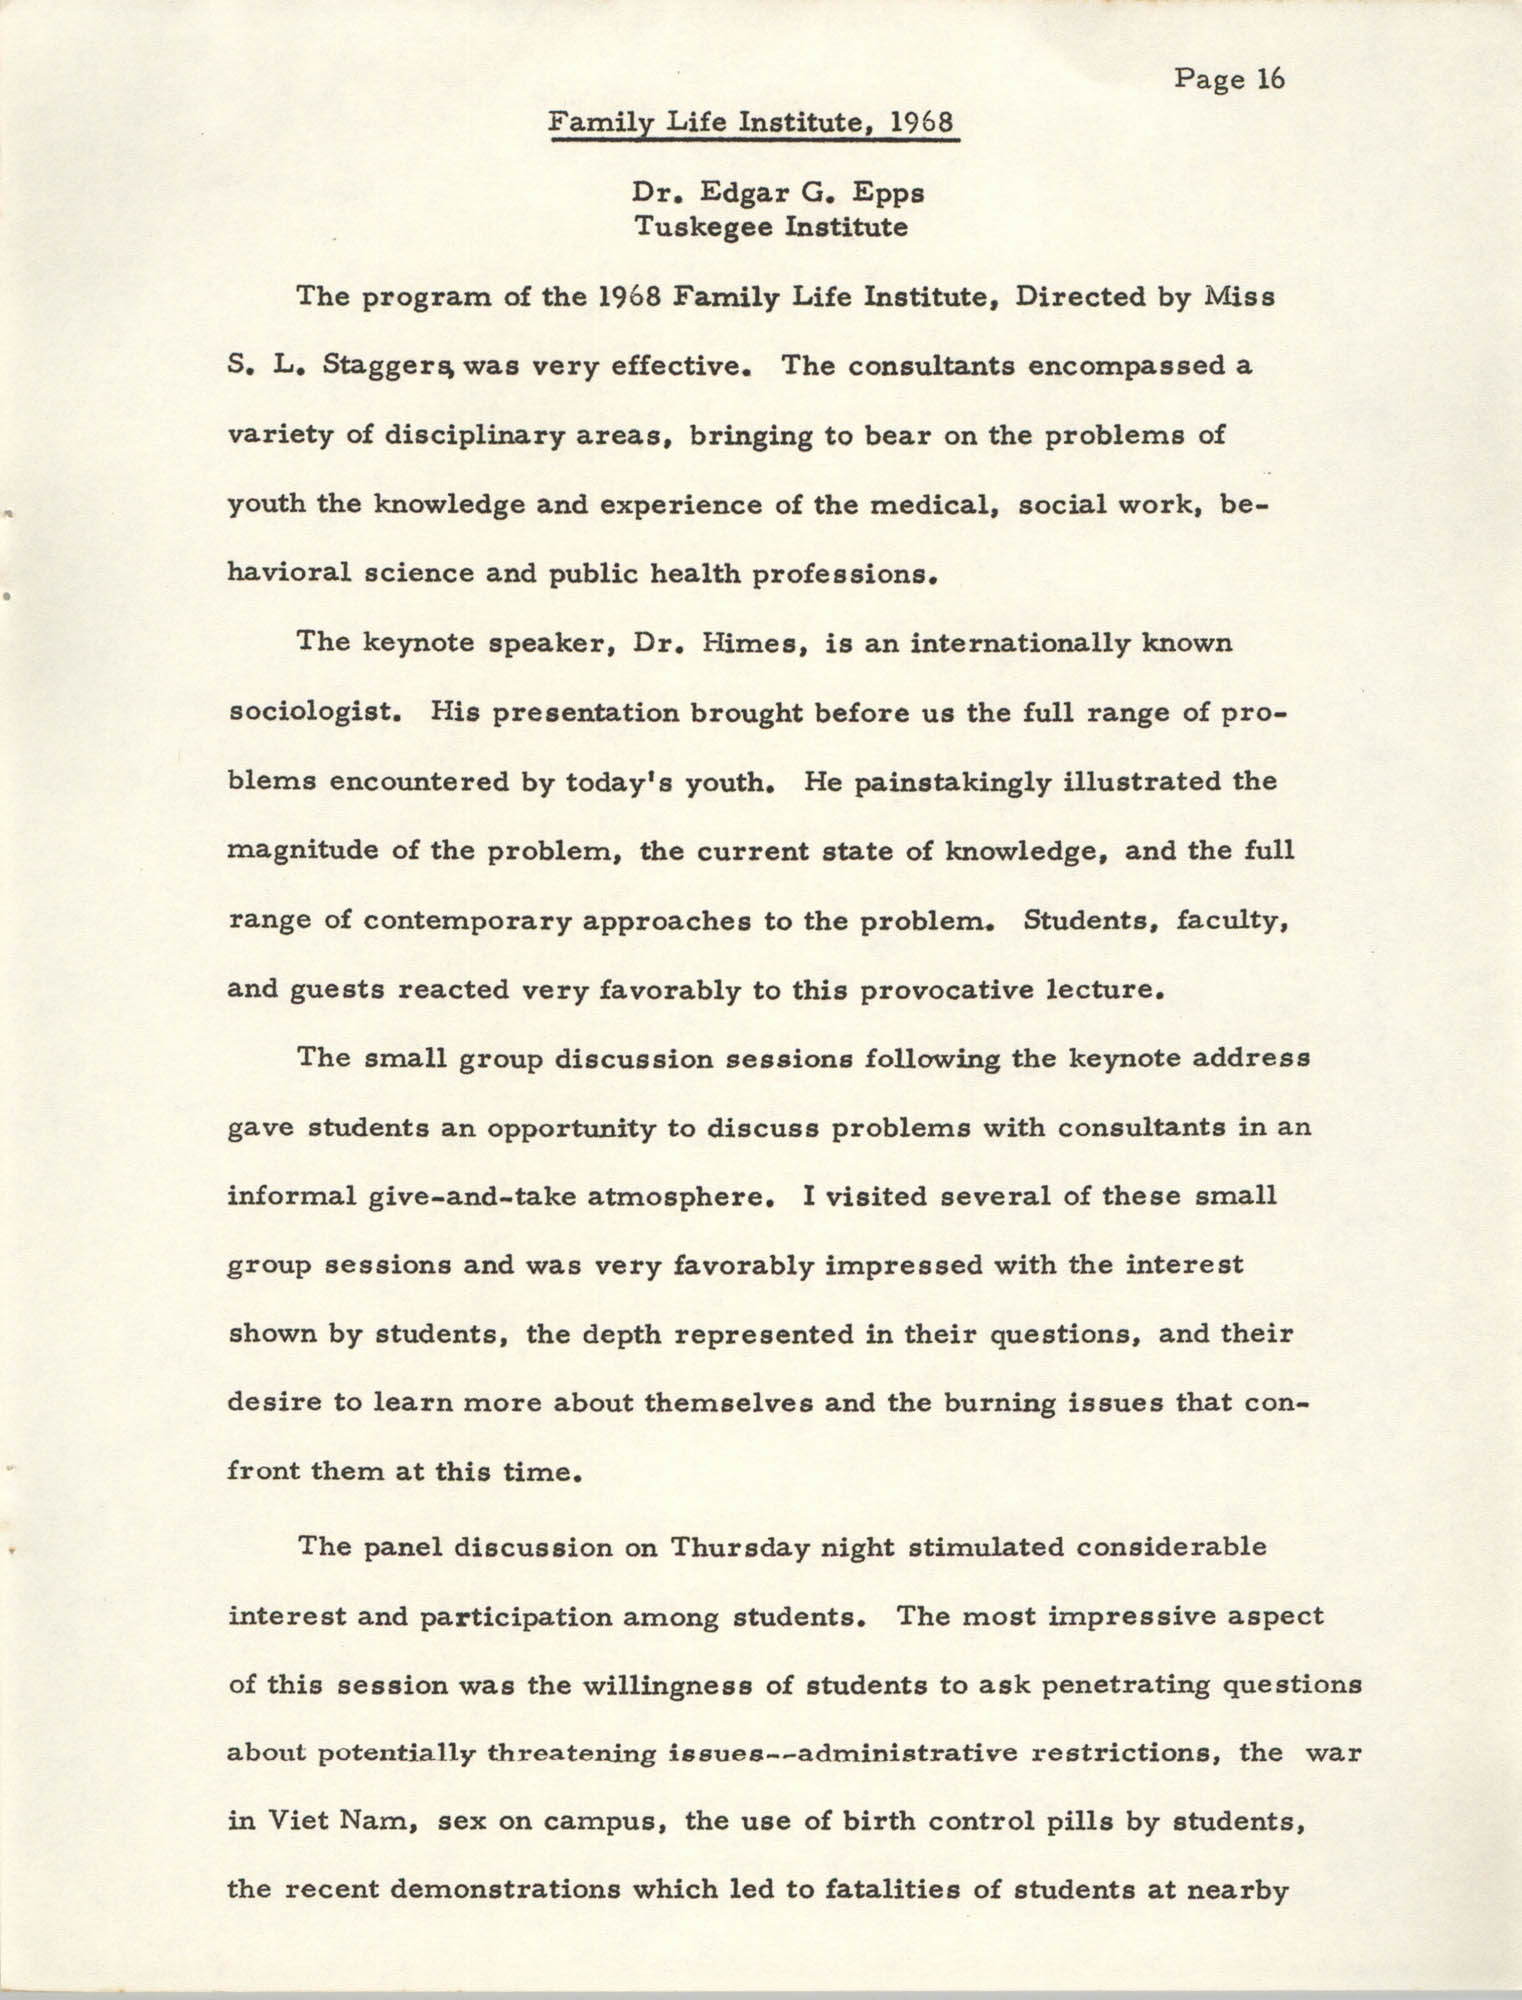 Letter Sallie Smith to Cleveland Sellers, April 20, 1978